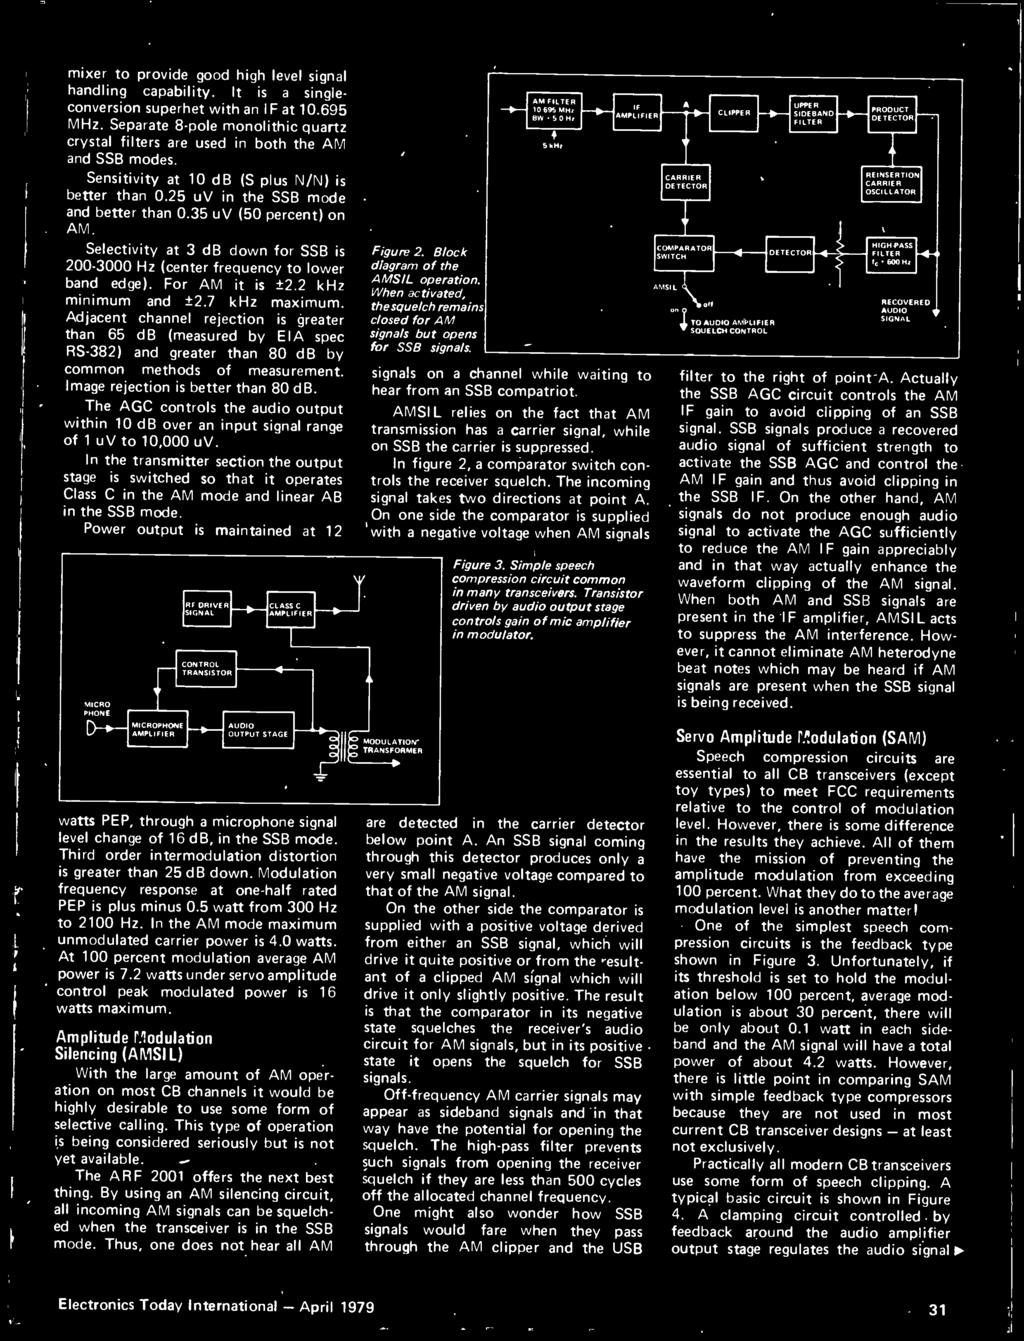 Idkator Ter Rirevie Ed G 1tehites 1 P Battely Audio Oscillators Electronic Circuits And Diagramelectronics The Agc Controls Output Within 10 Db Over An Input Signal Range Of